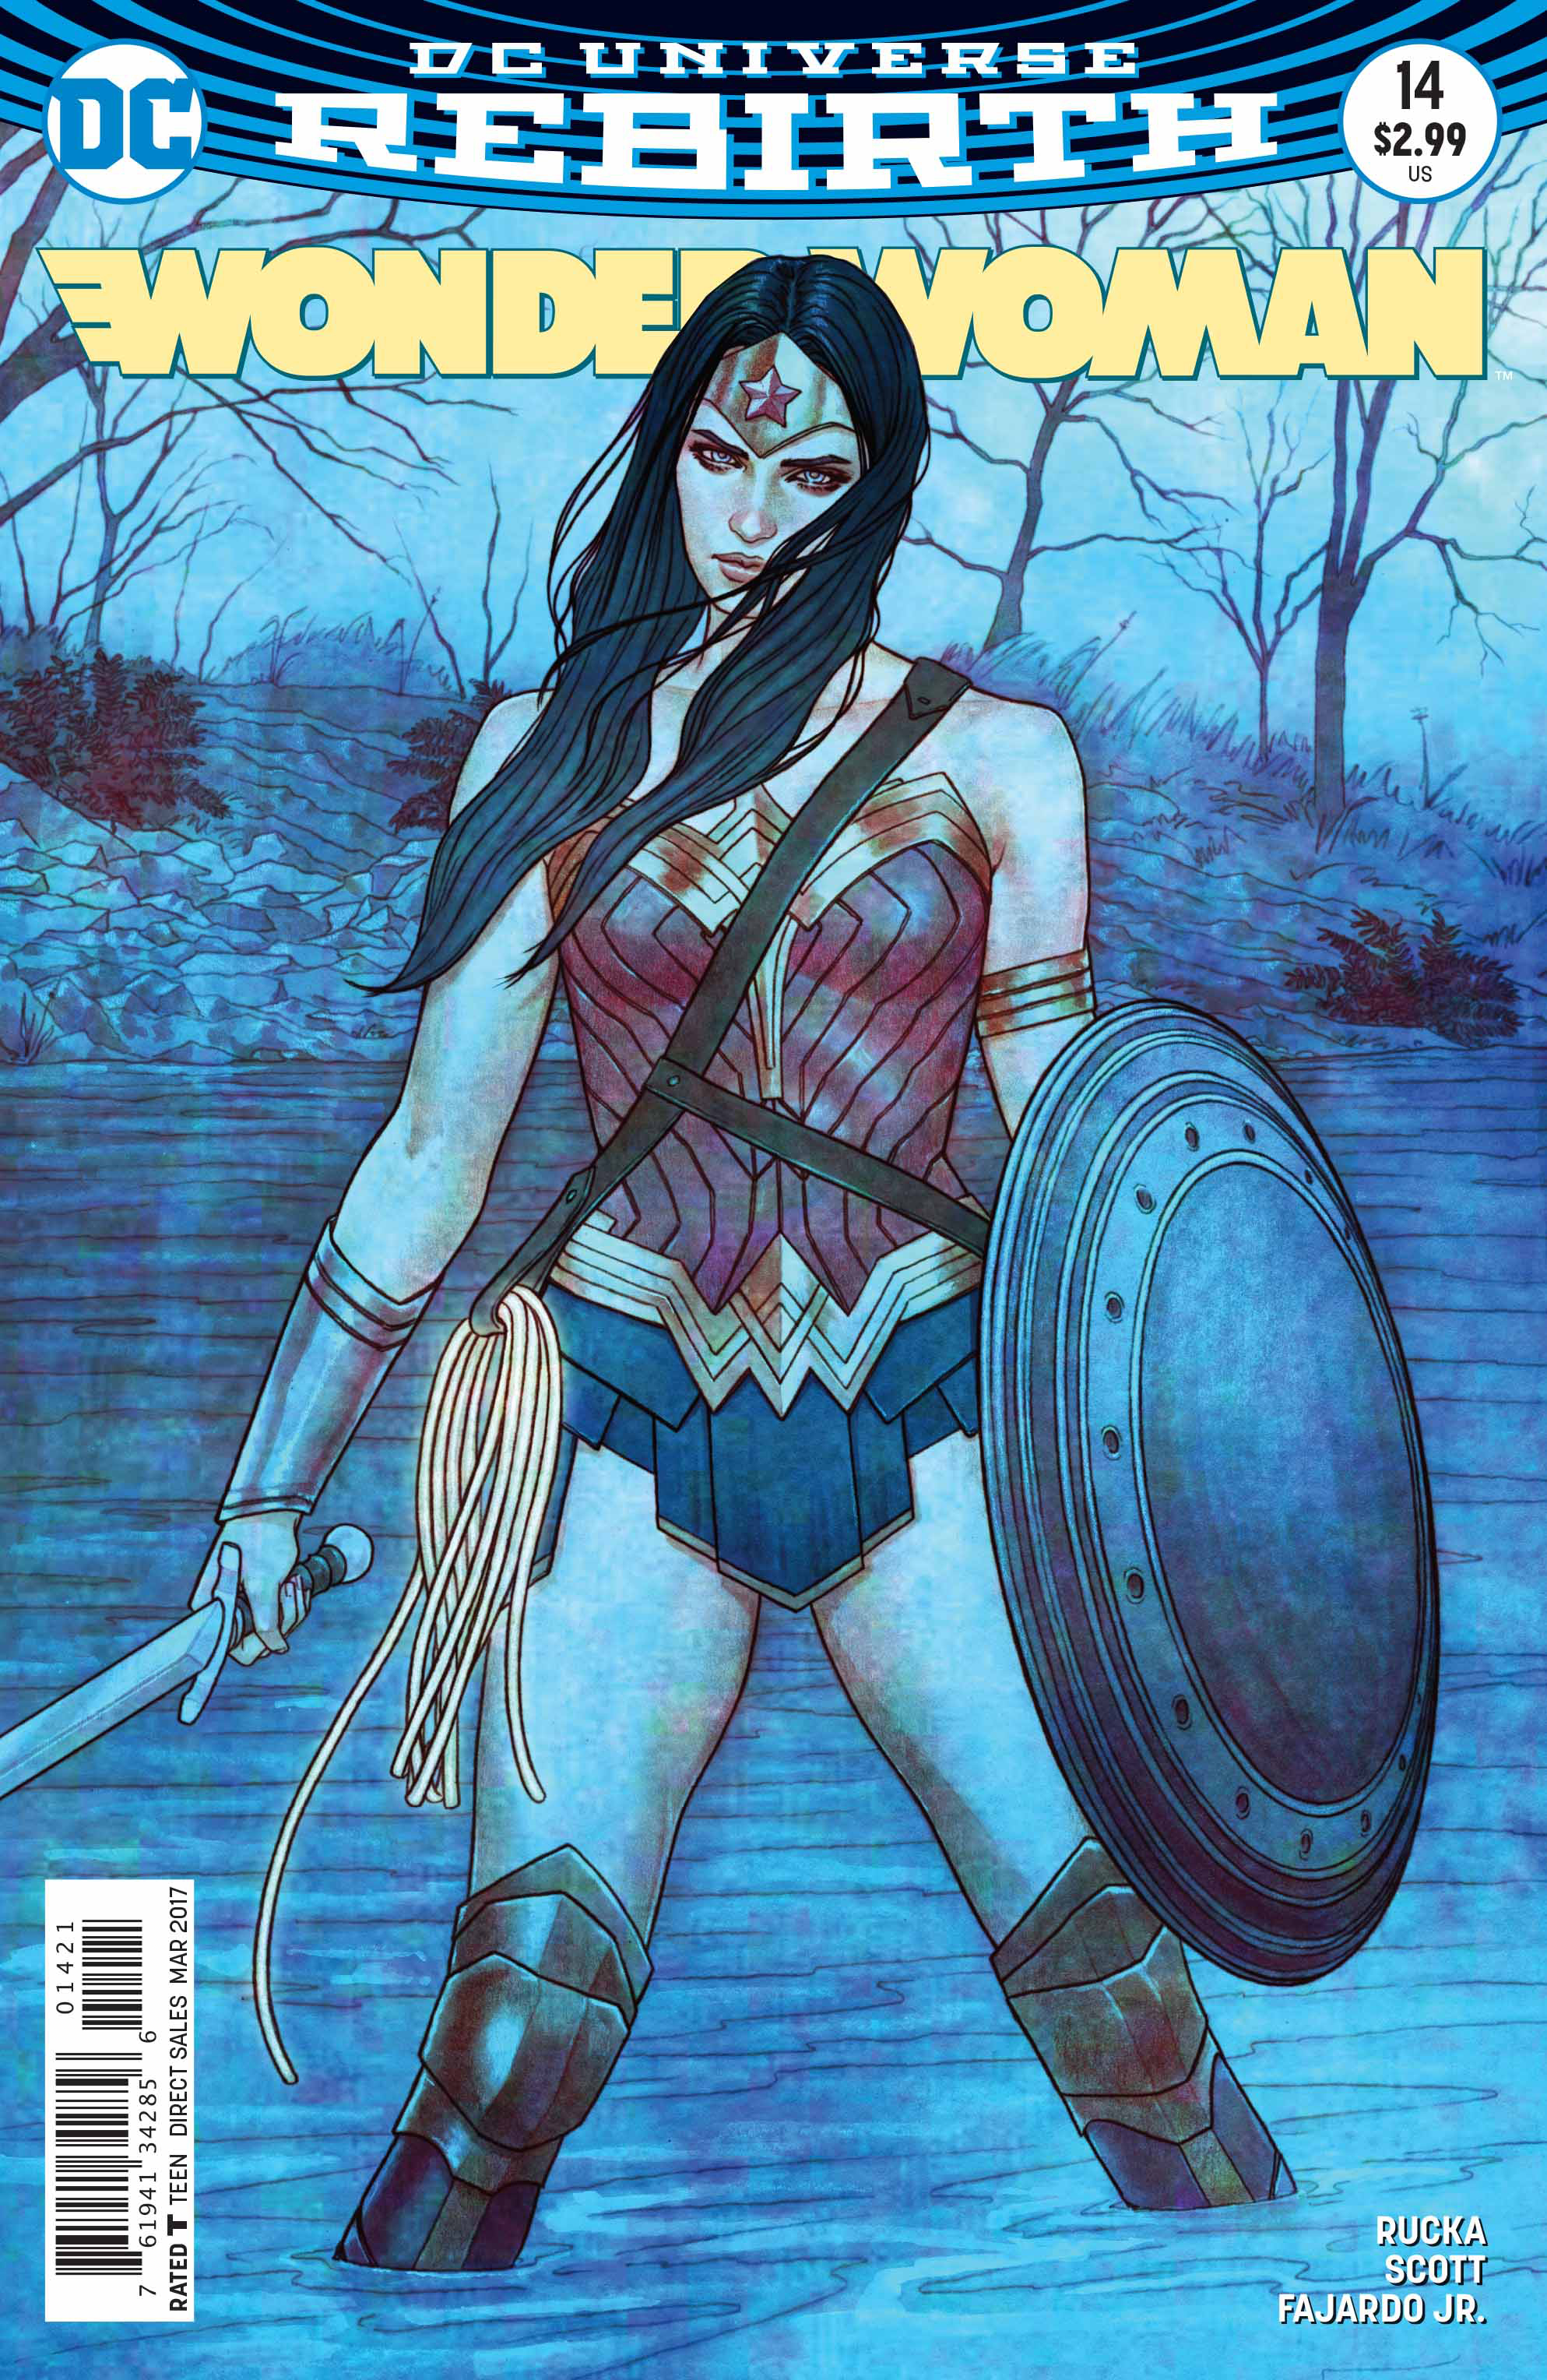 WONDER WOMAN #14 VAR ED